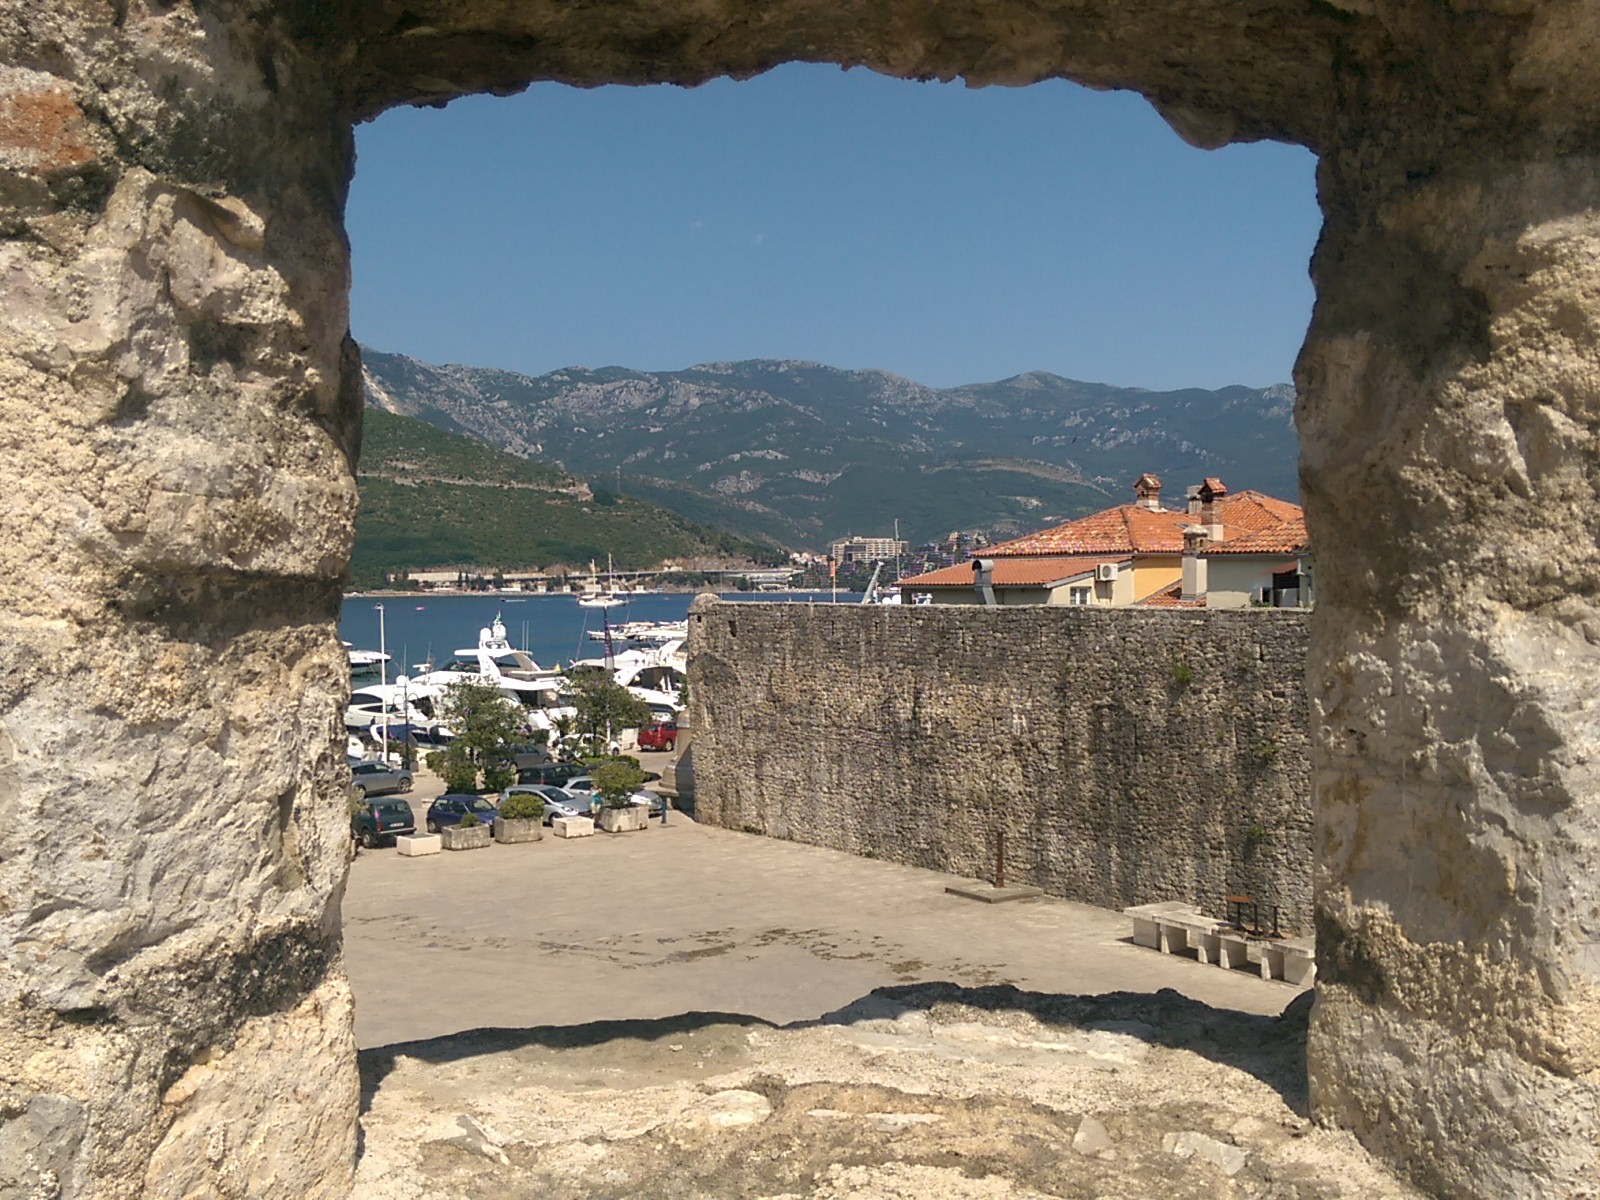 A stone square window with a view to sea, port, mountains